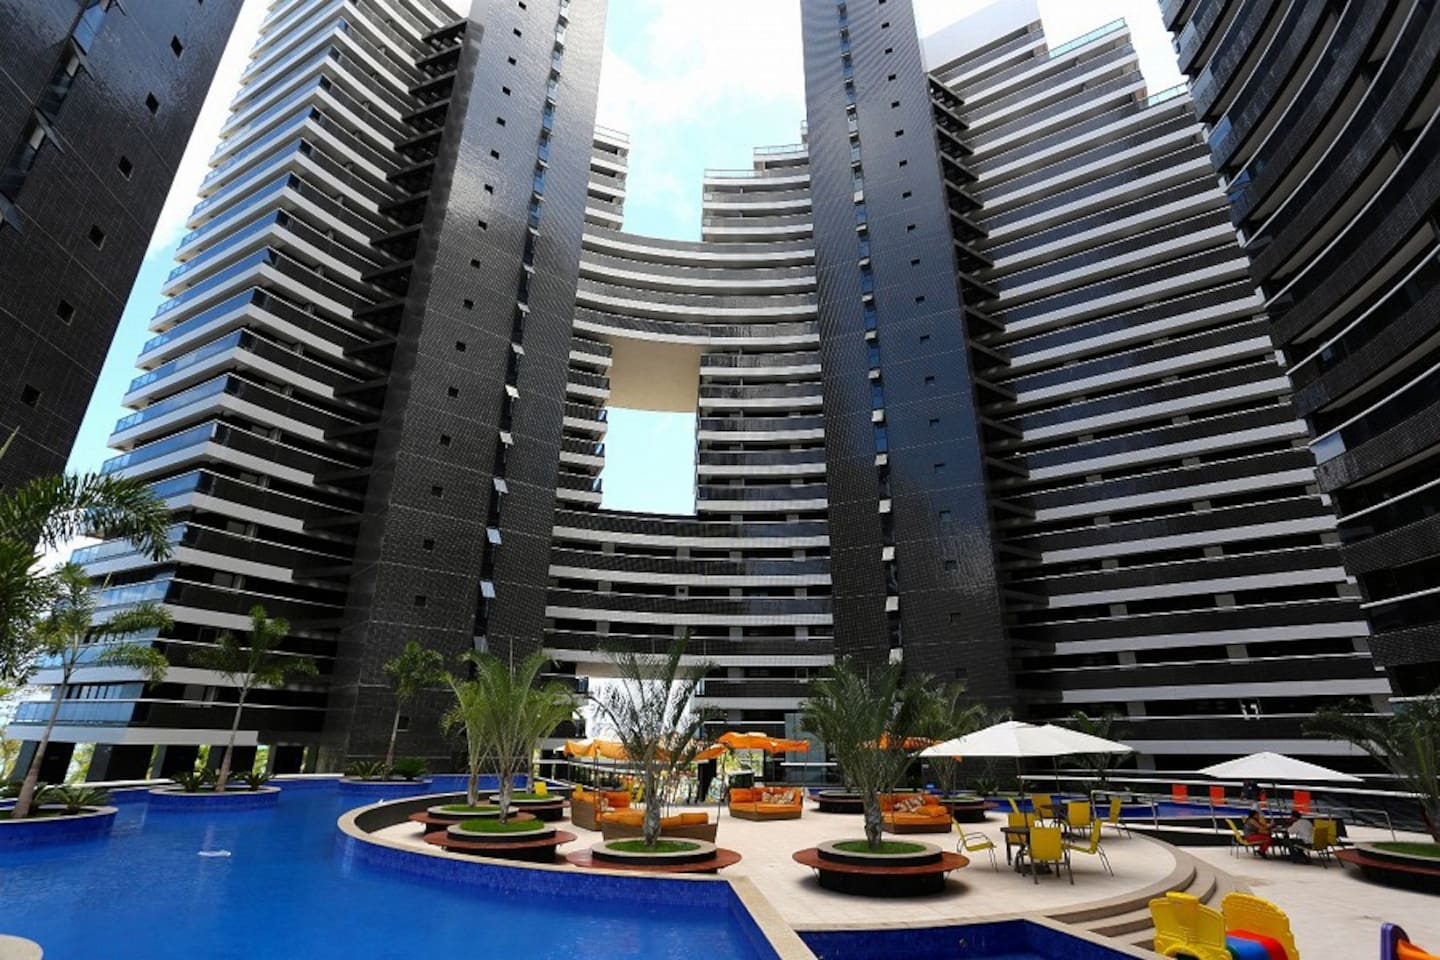 Landscape - The best location at Beira Mar in Fortaleza